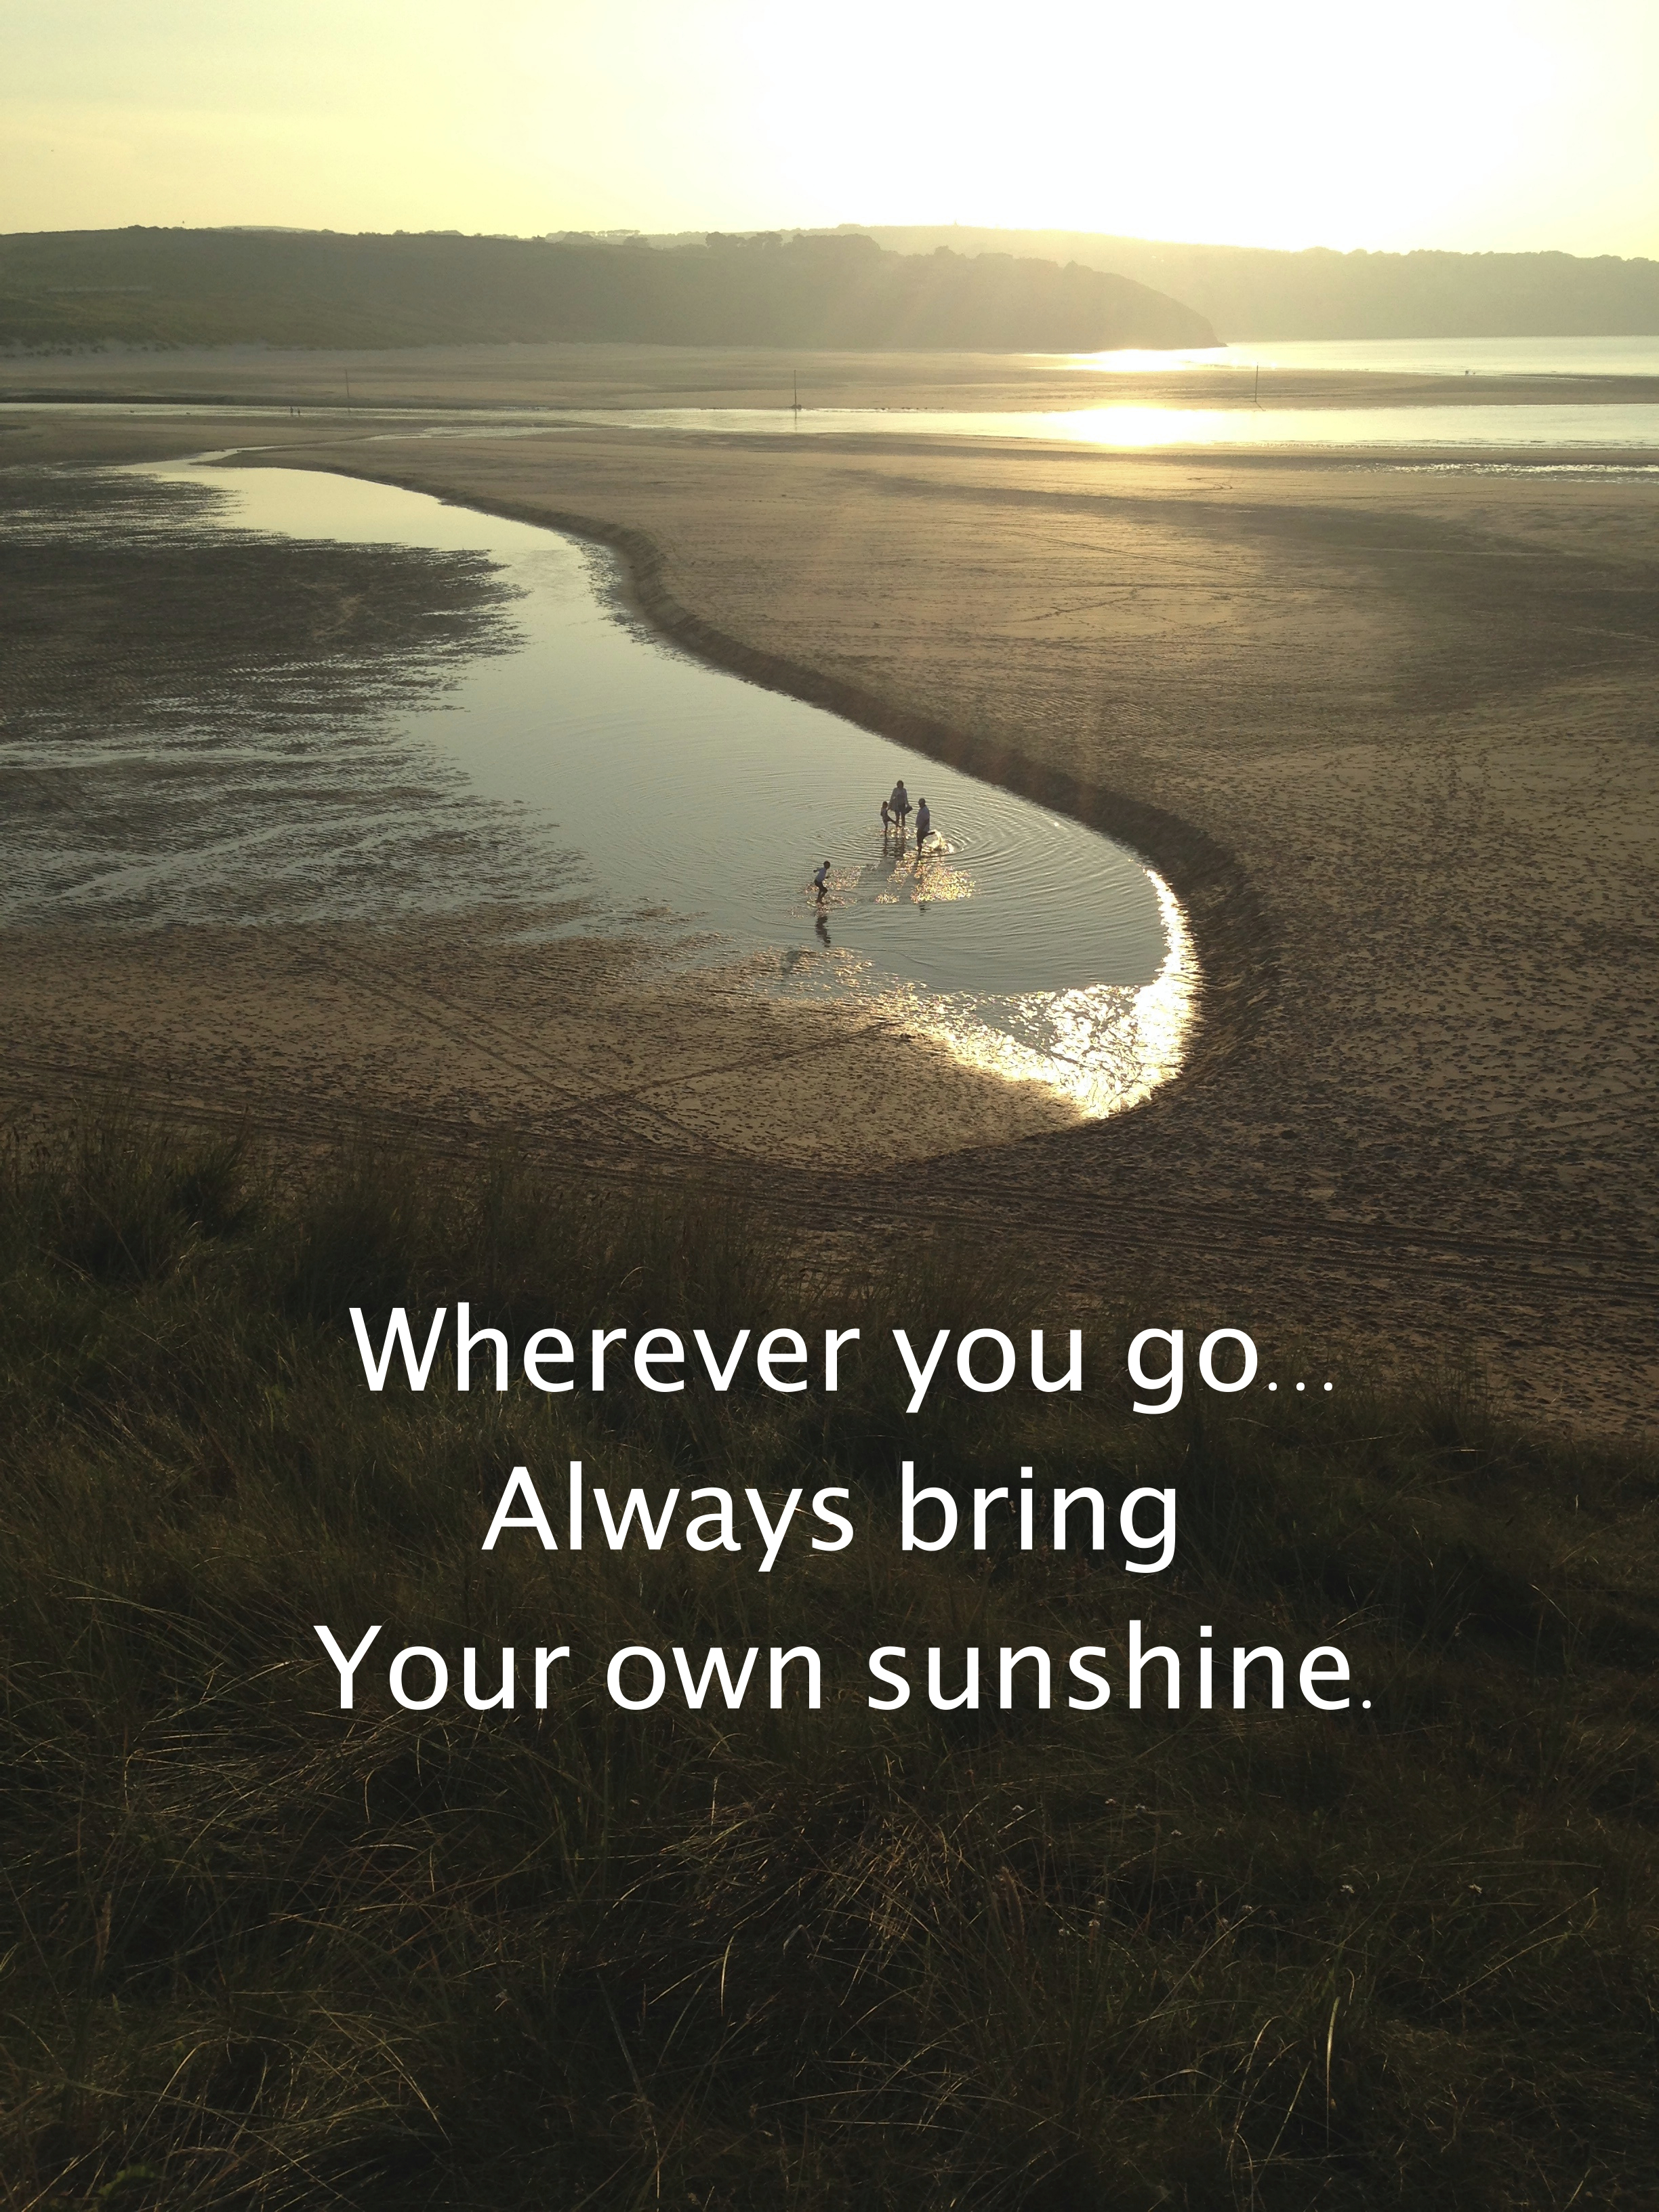 Quote against backdrop of beach bathed in sunshine: Wherever you go always bring your own sunshine